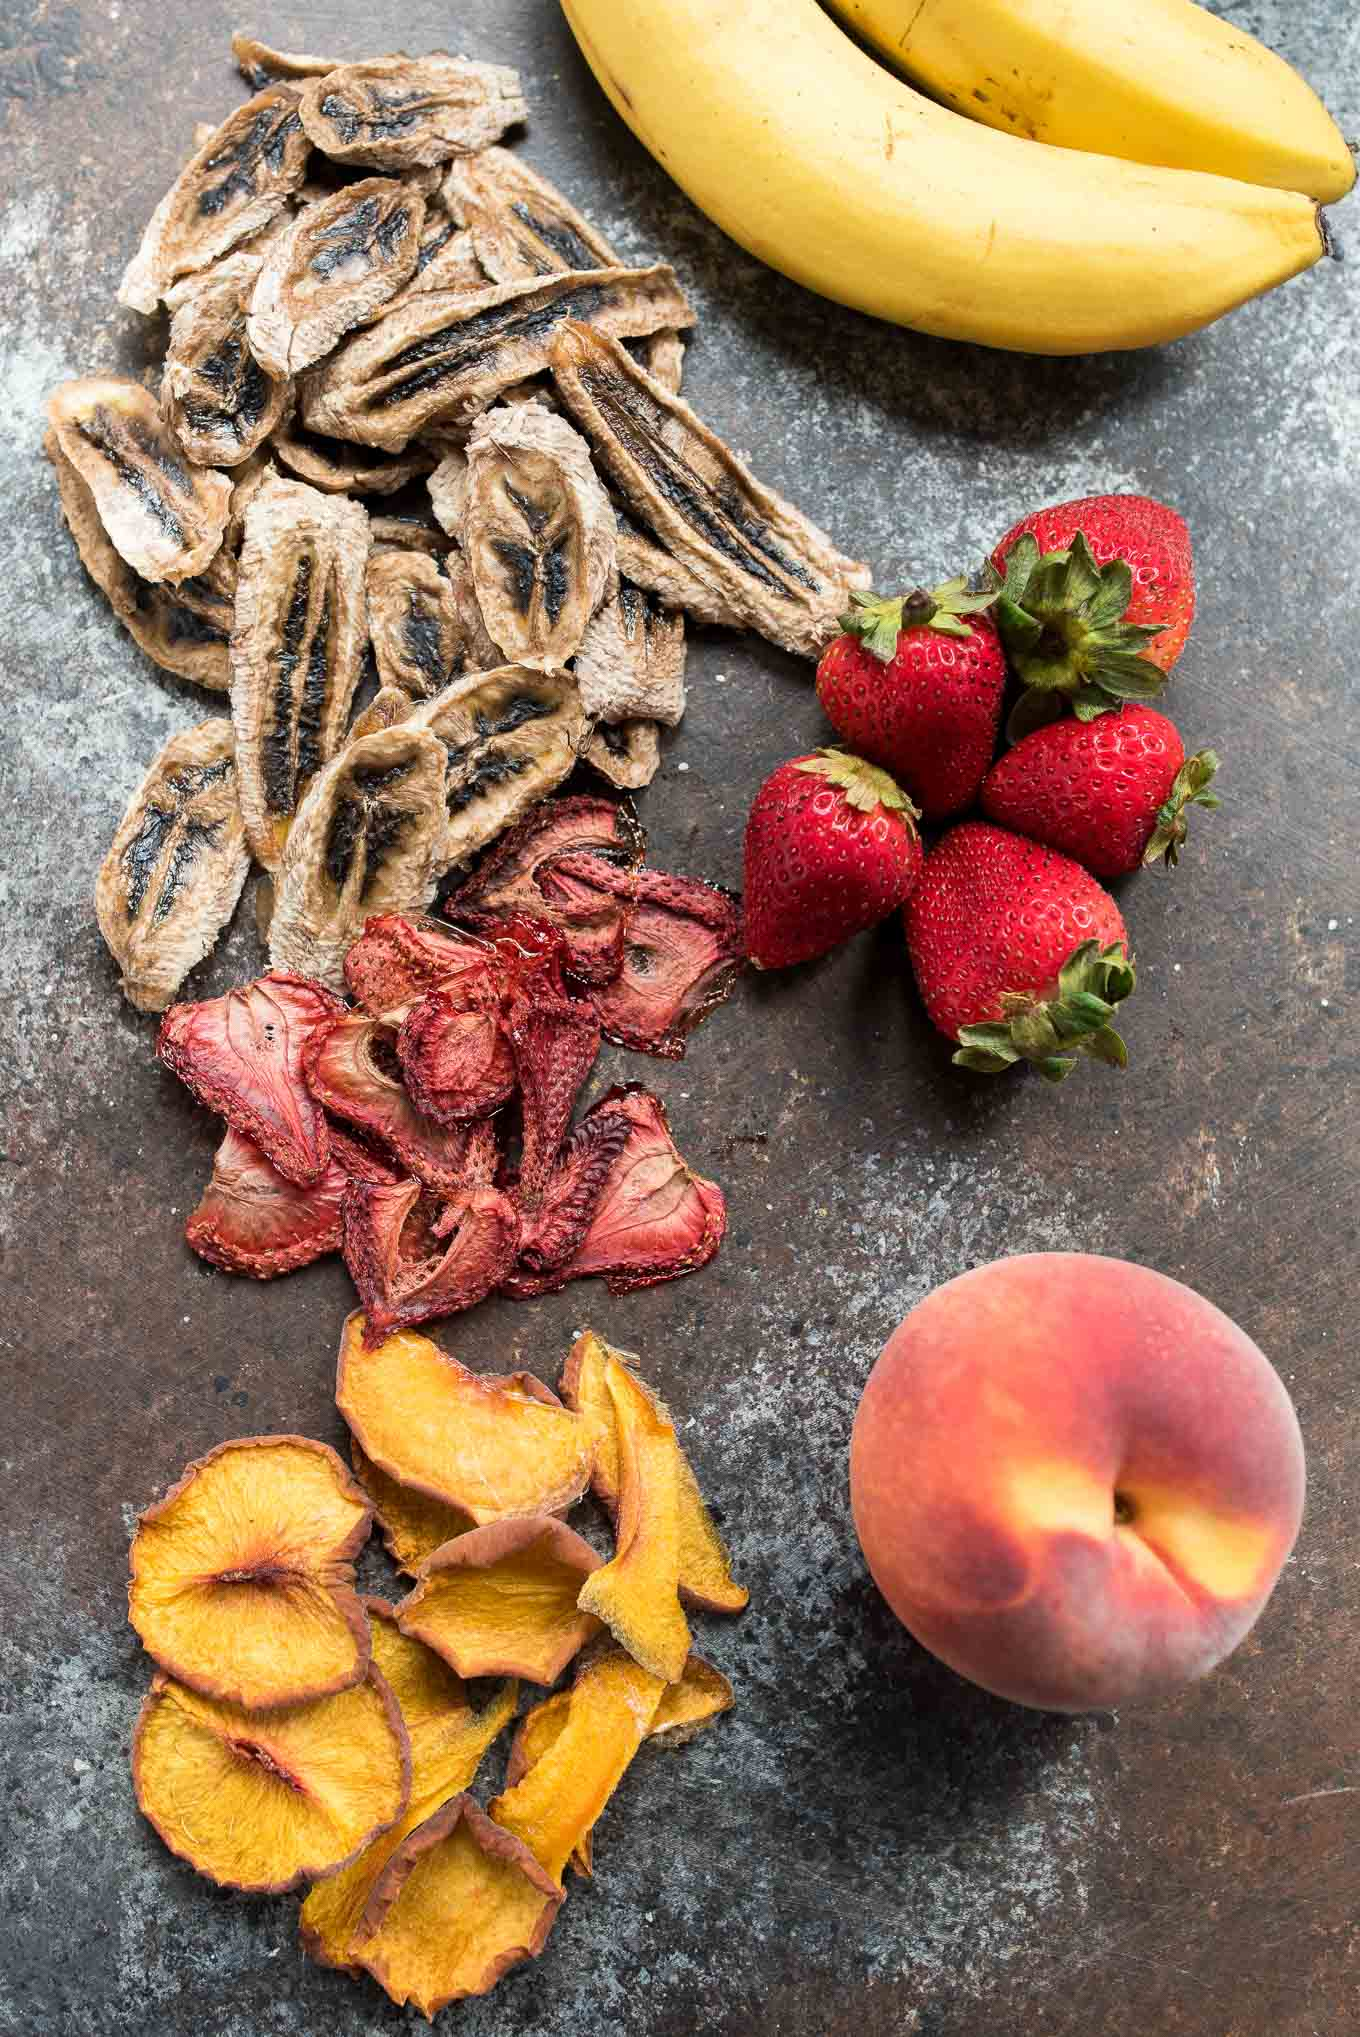 Simple Homemade Dried Fruit - Nutritious Eats- Healthy Recipes & Nutrition 2016-10-28 13:29